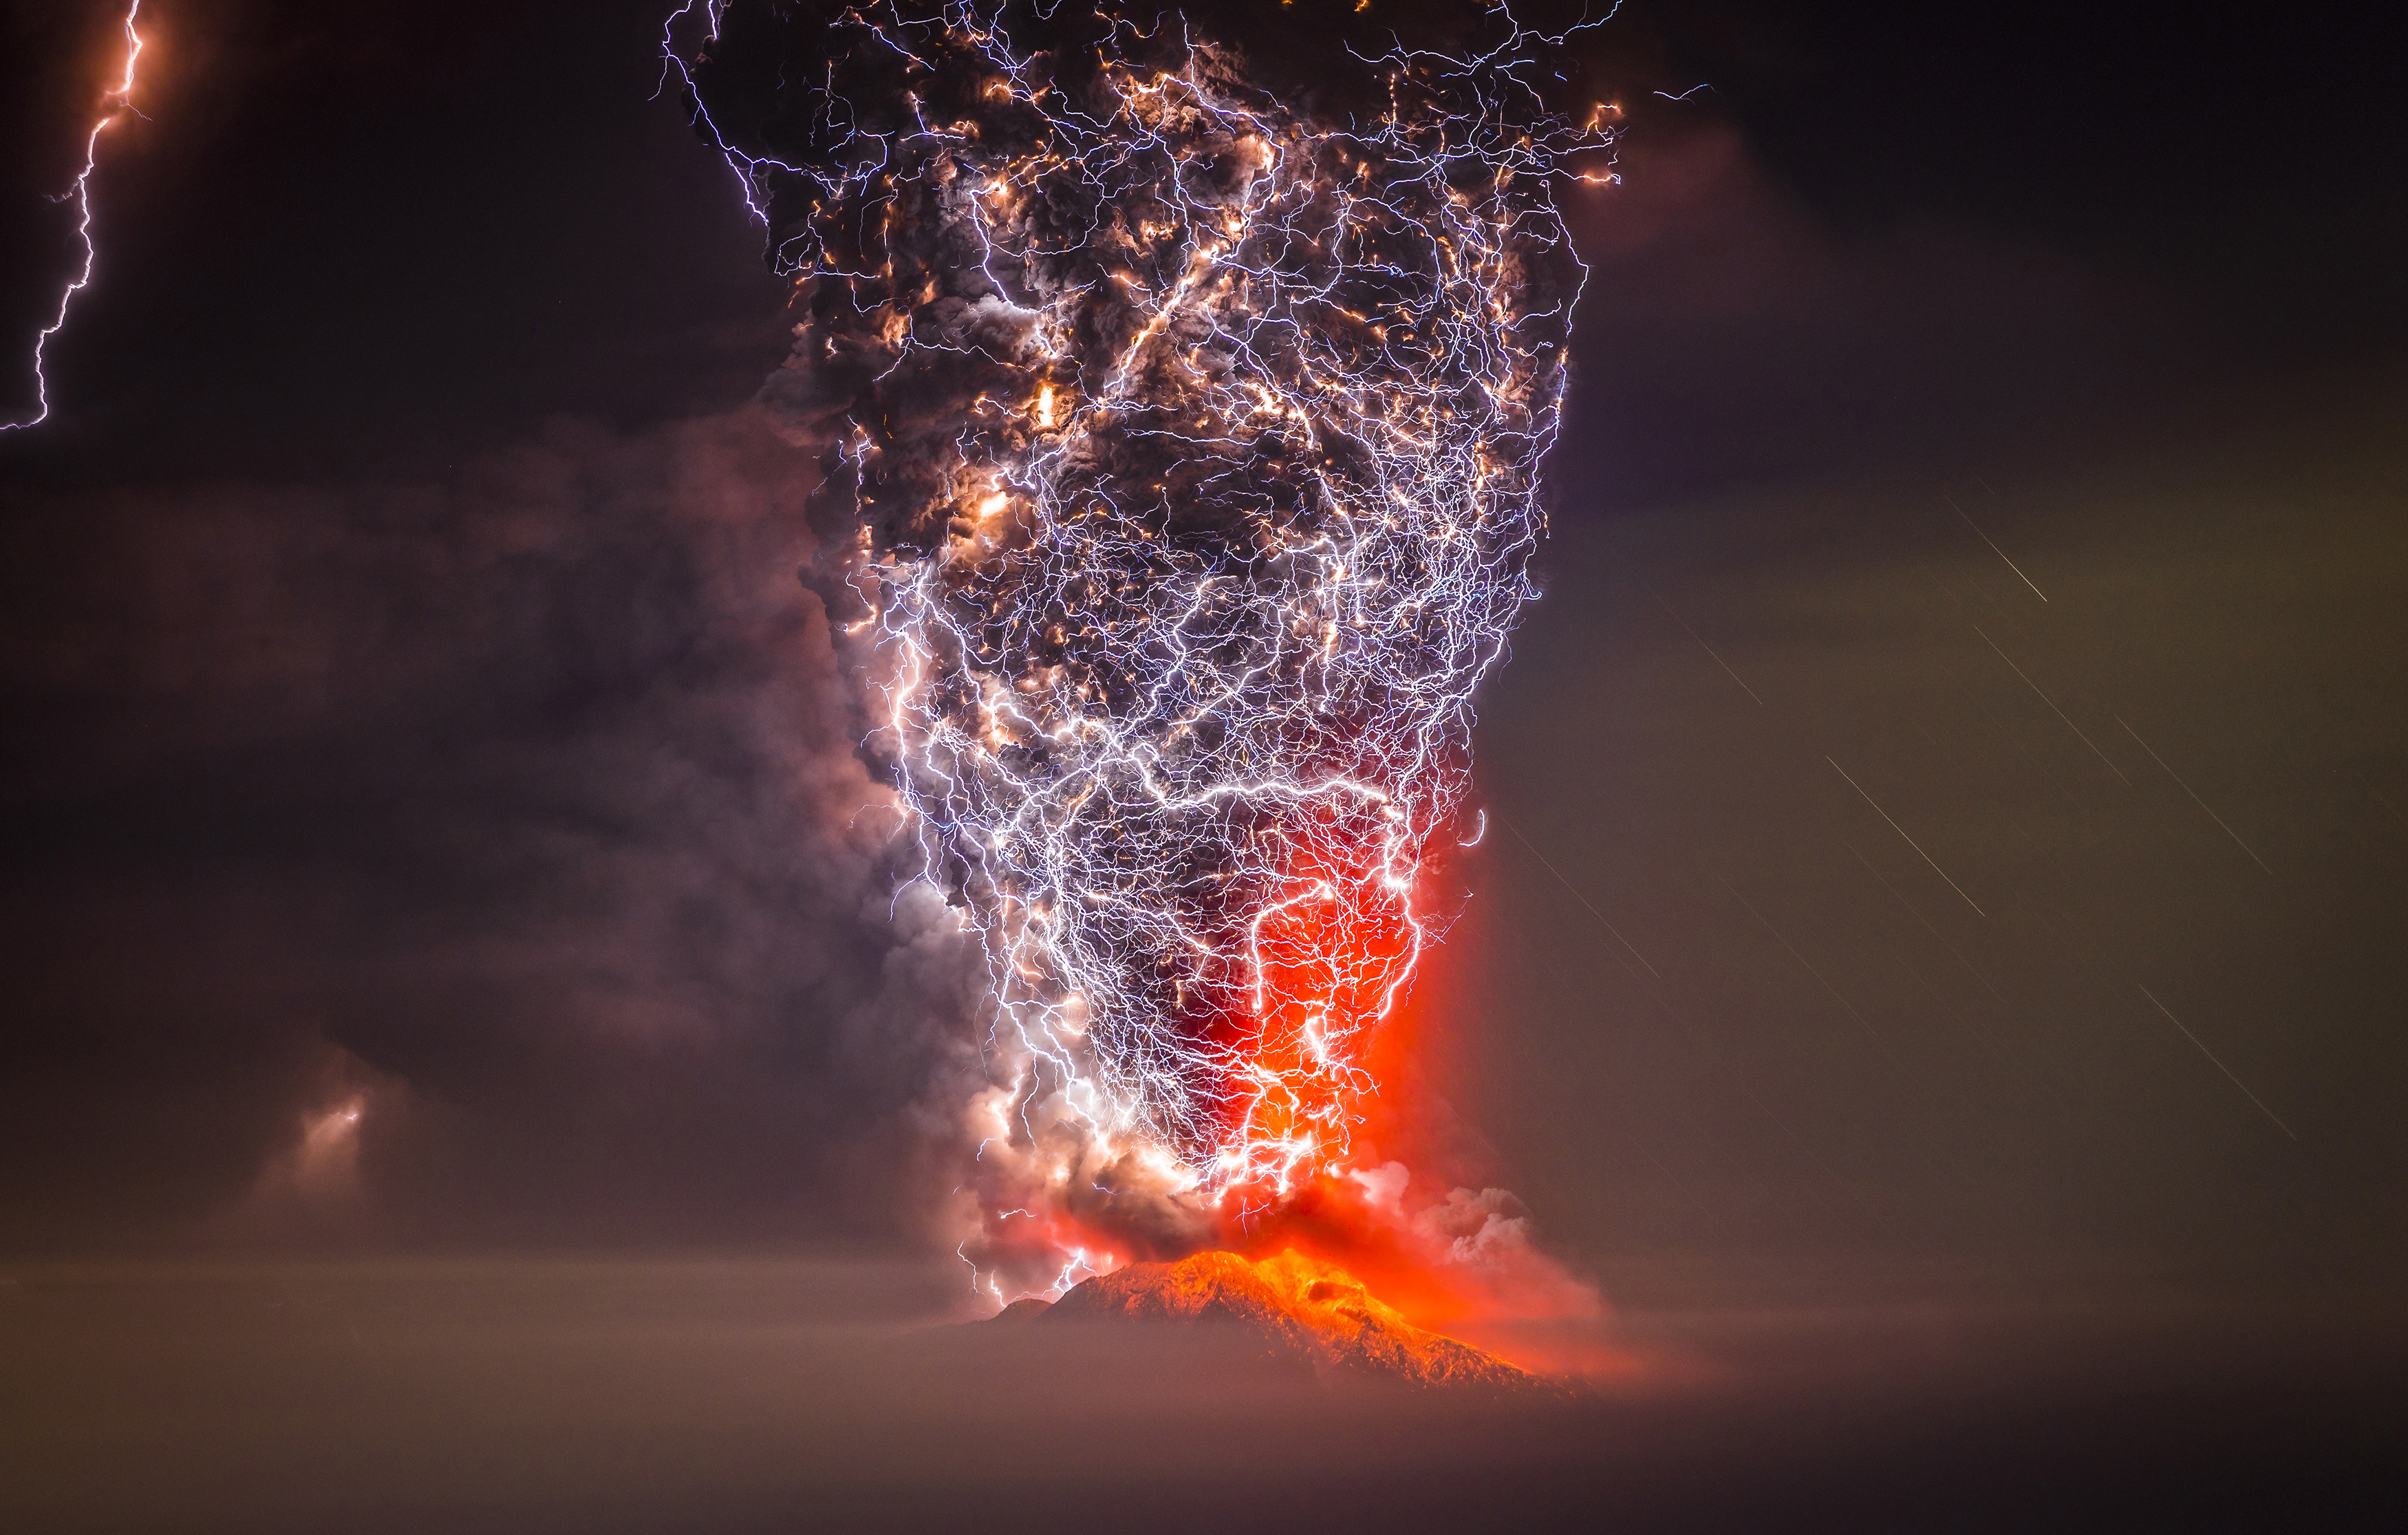 Volcanic Eruption of Calbuco, Chile